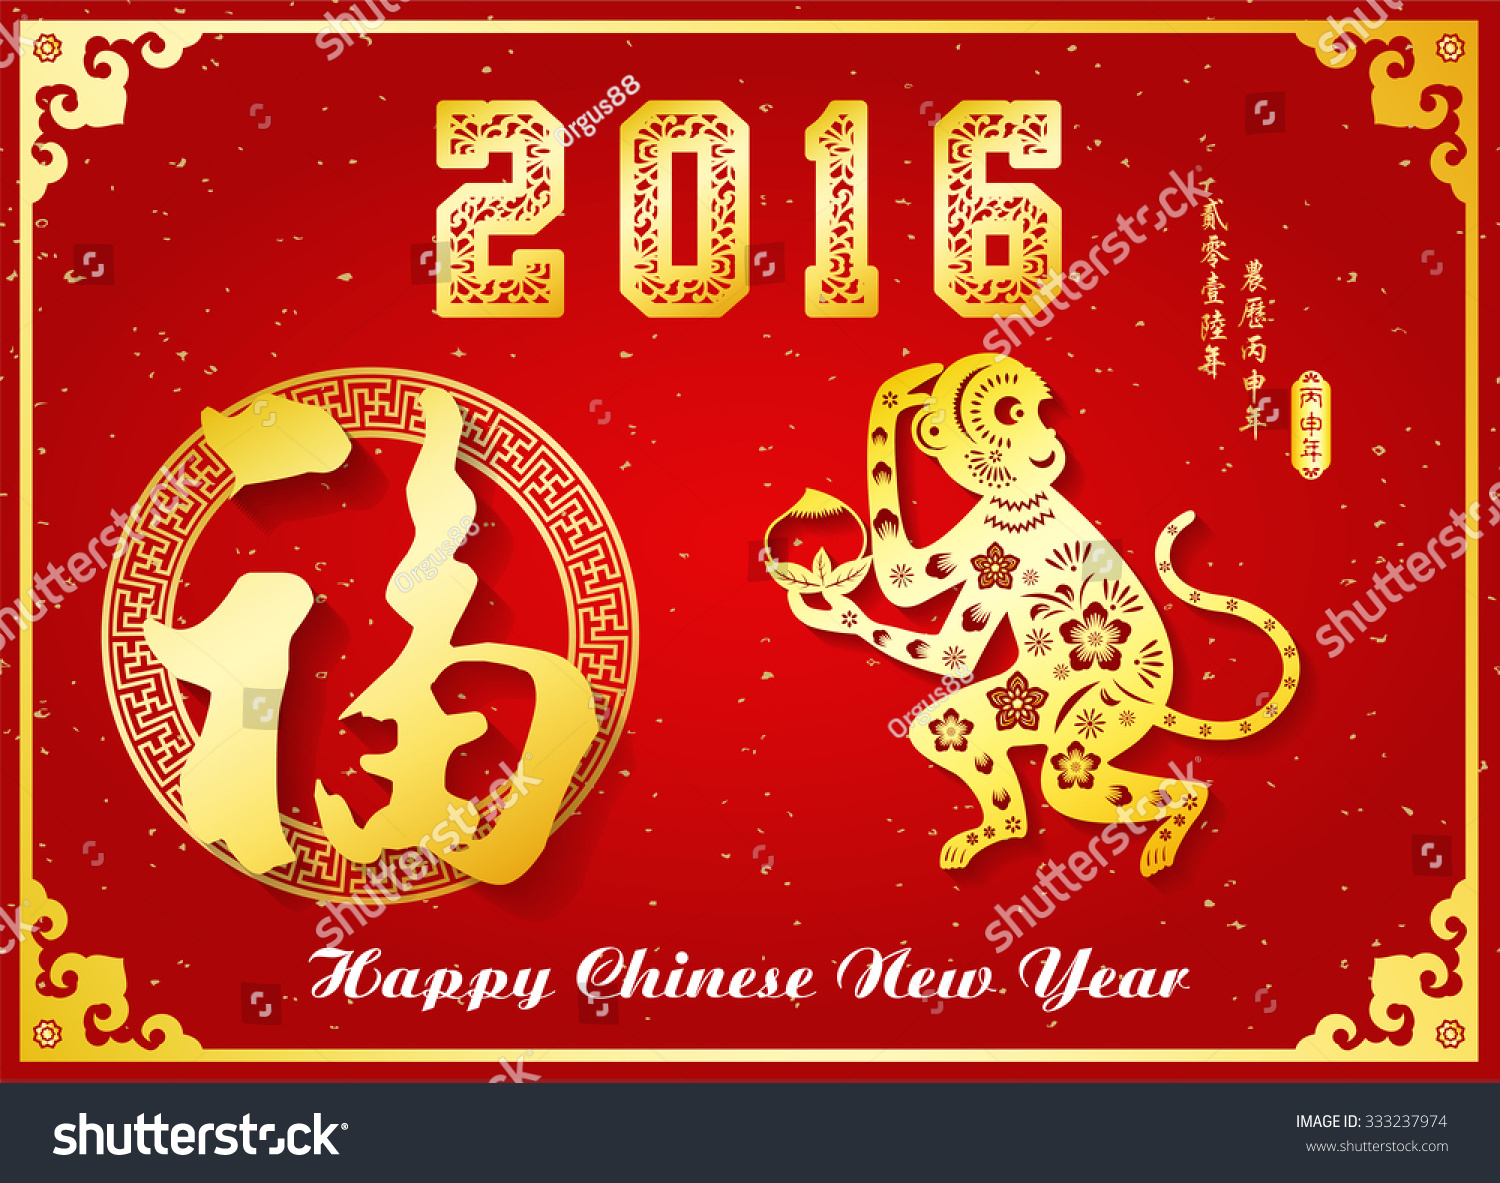 Chinese New Year Greeting Card Design Chinese Year Of